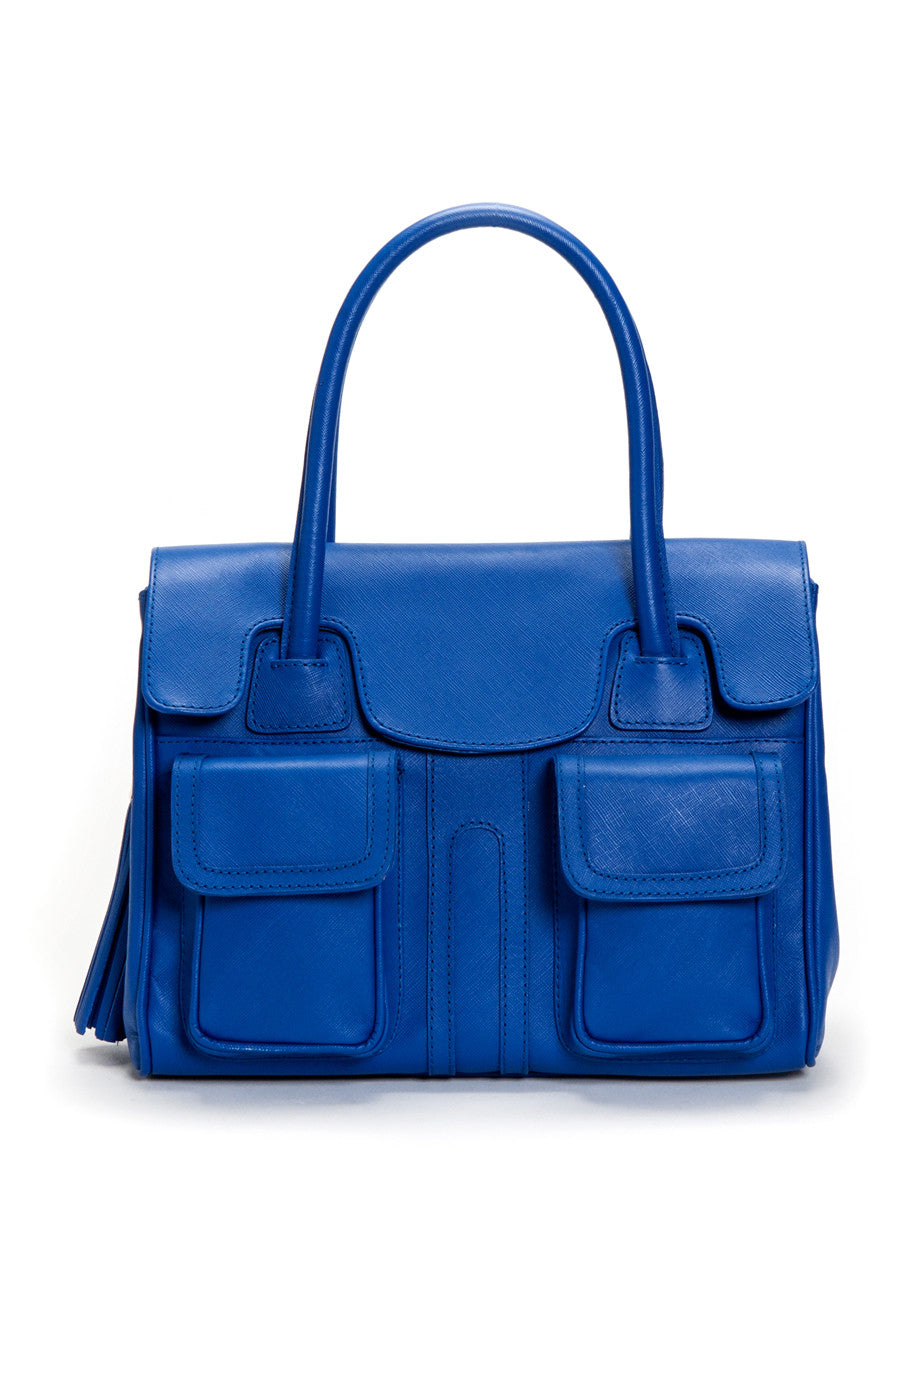 Cobalt Blue Saffiano Leather Christy Mini Tote | Front View | Mel Boteri